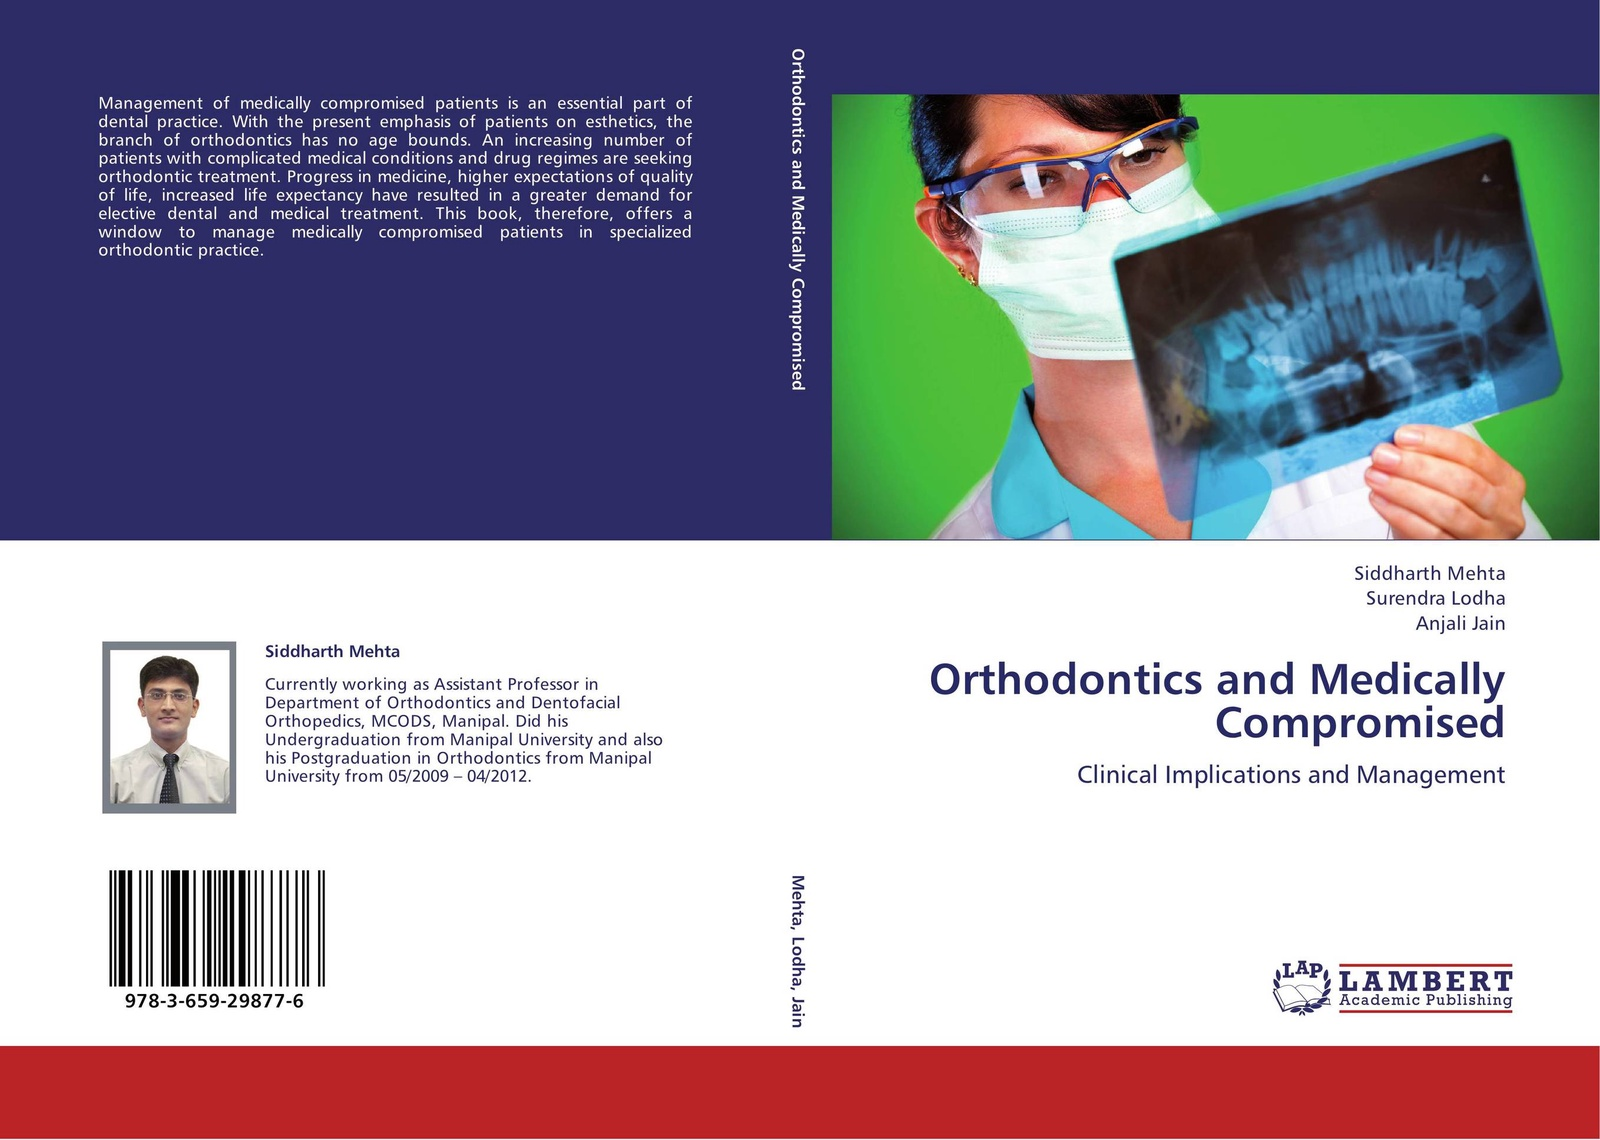 Siddharth Mehta,Surendra Lodha and Anjali Jain Orthodontics and Medically Compromised peter lockhart b oral medicine and medically complex patients